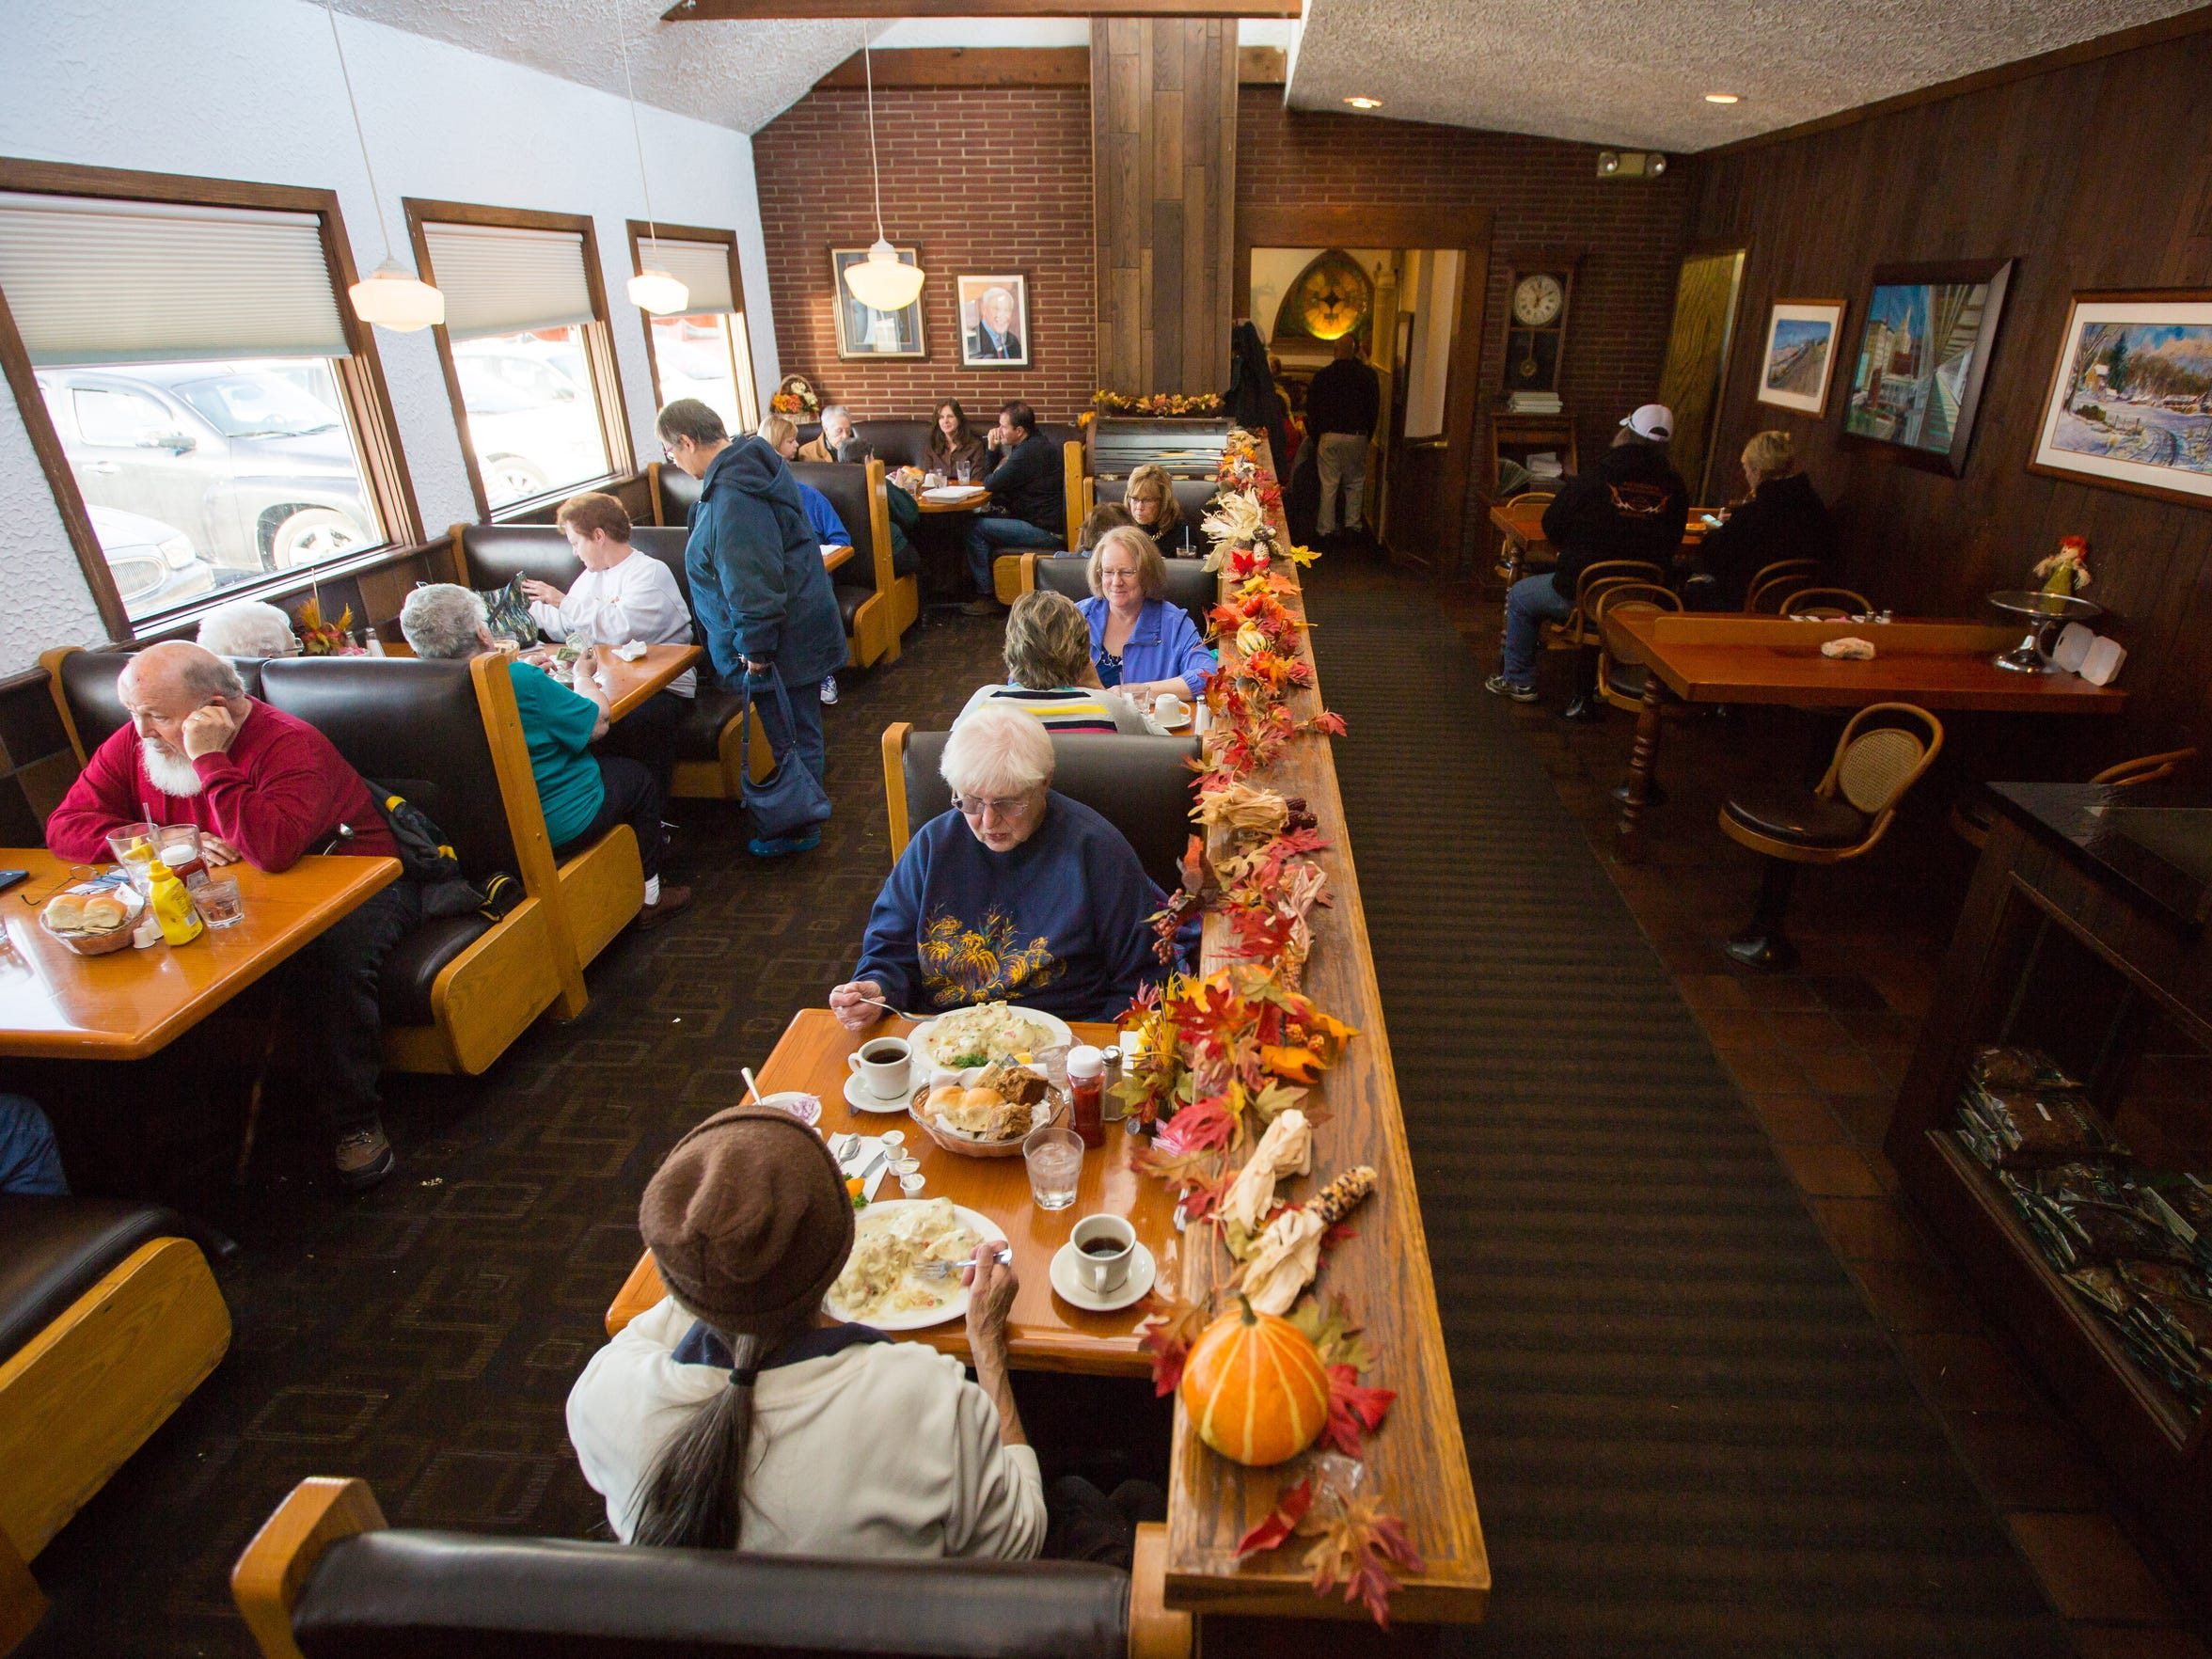 Riefe's in Davenport photographed Tuesday, Nov. 24, 2015. The restaurant will be closing this month after 66 years in business.